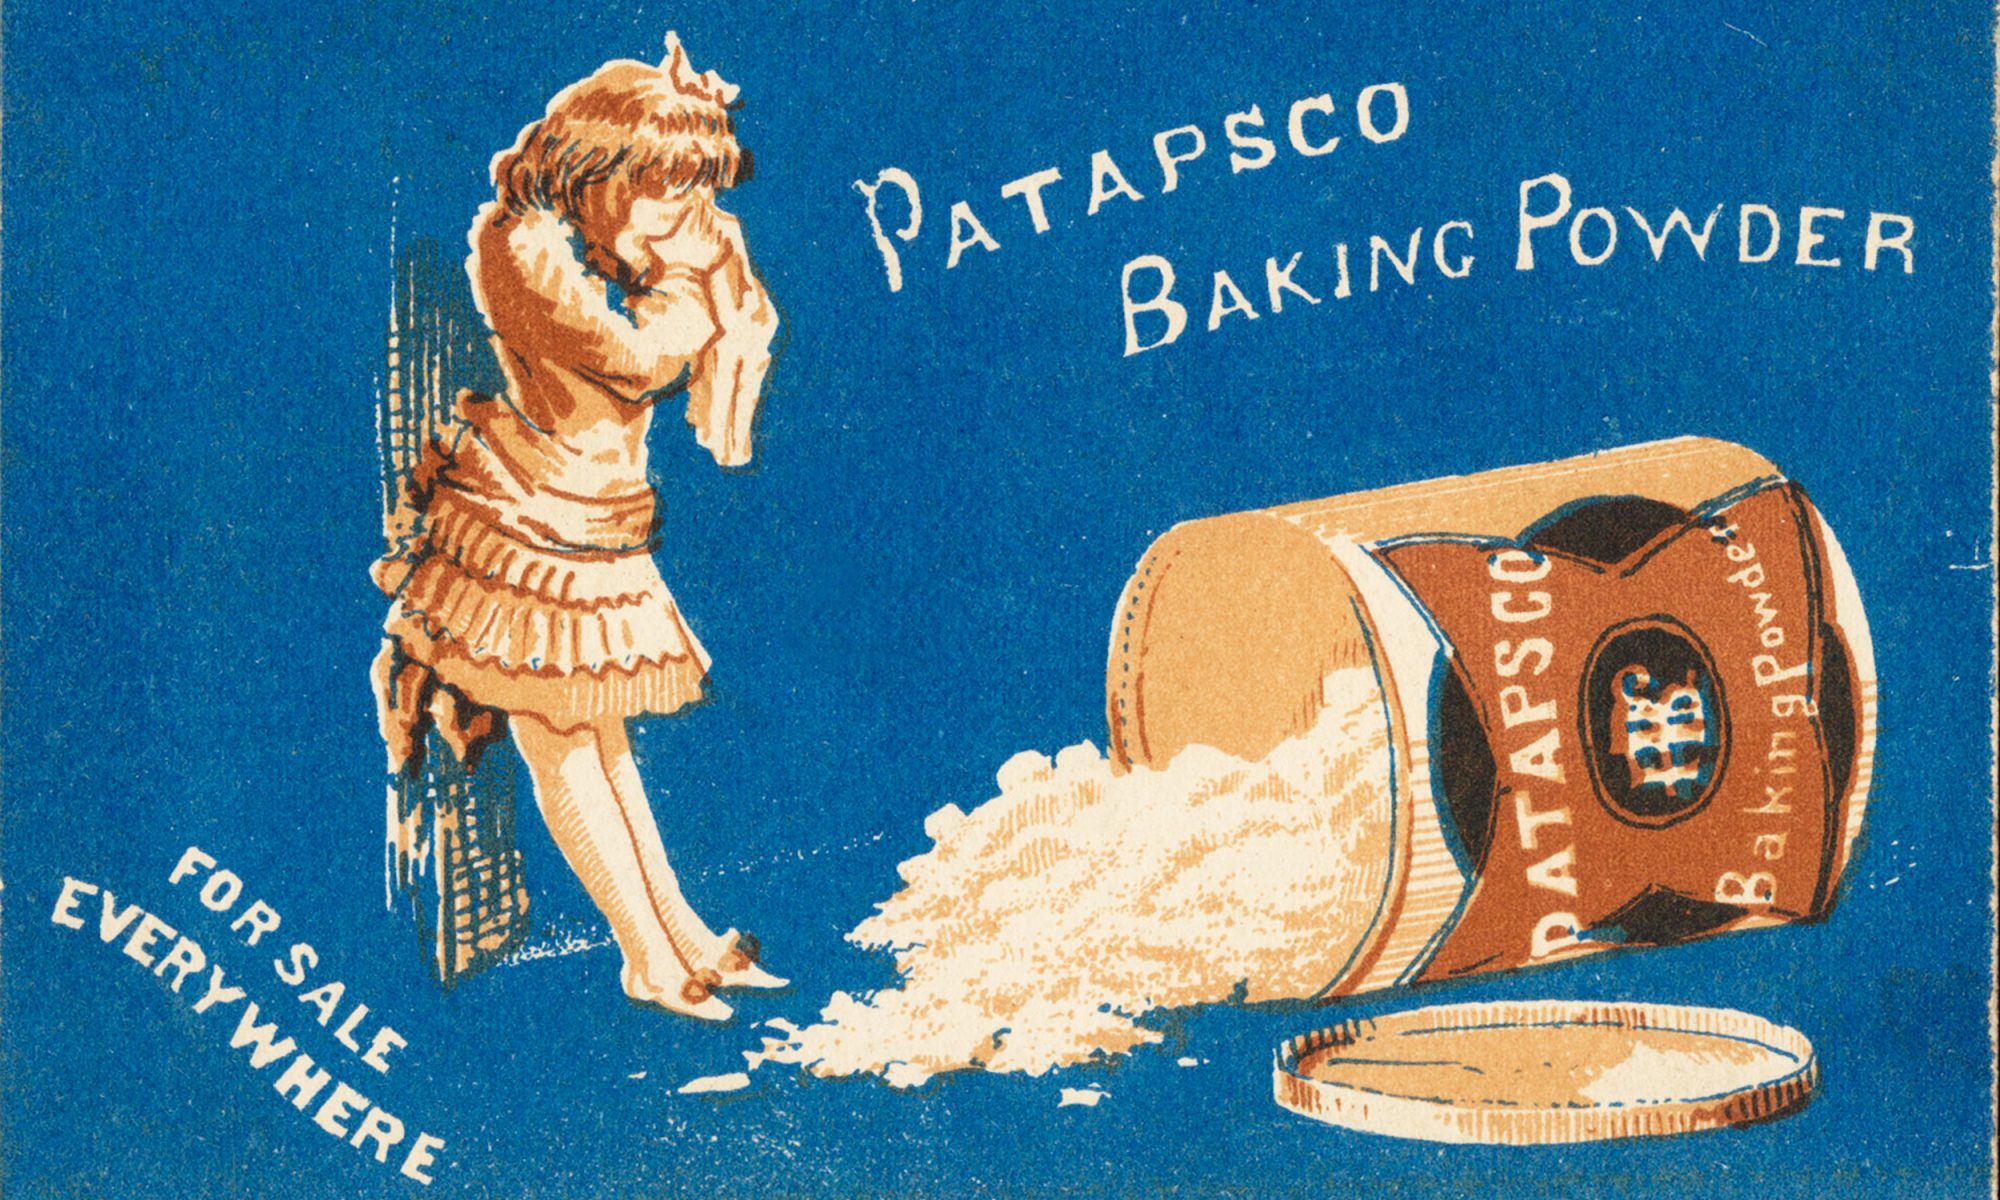 EC: The Wild and Crazy History of Baking Powder